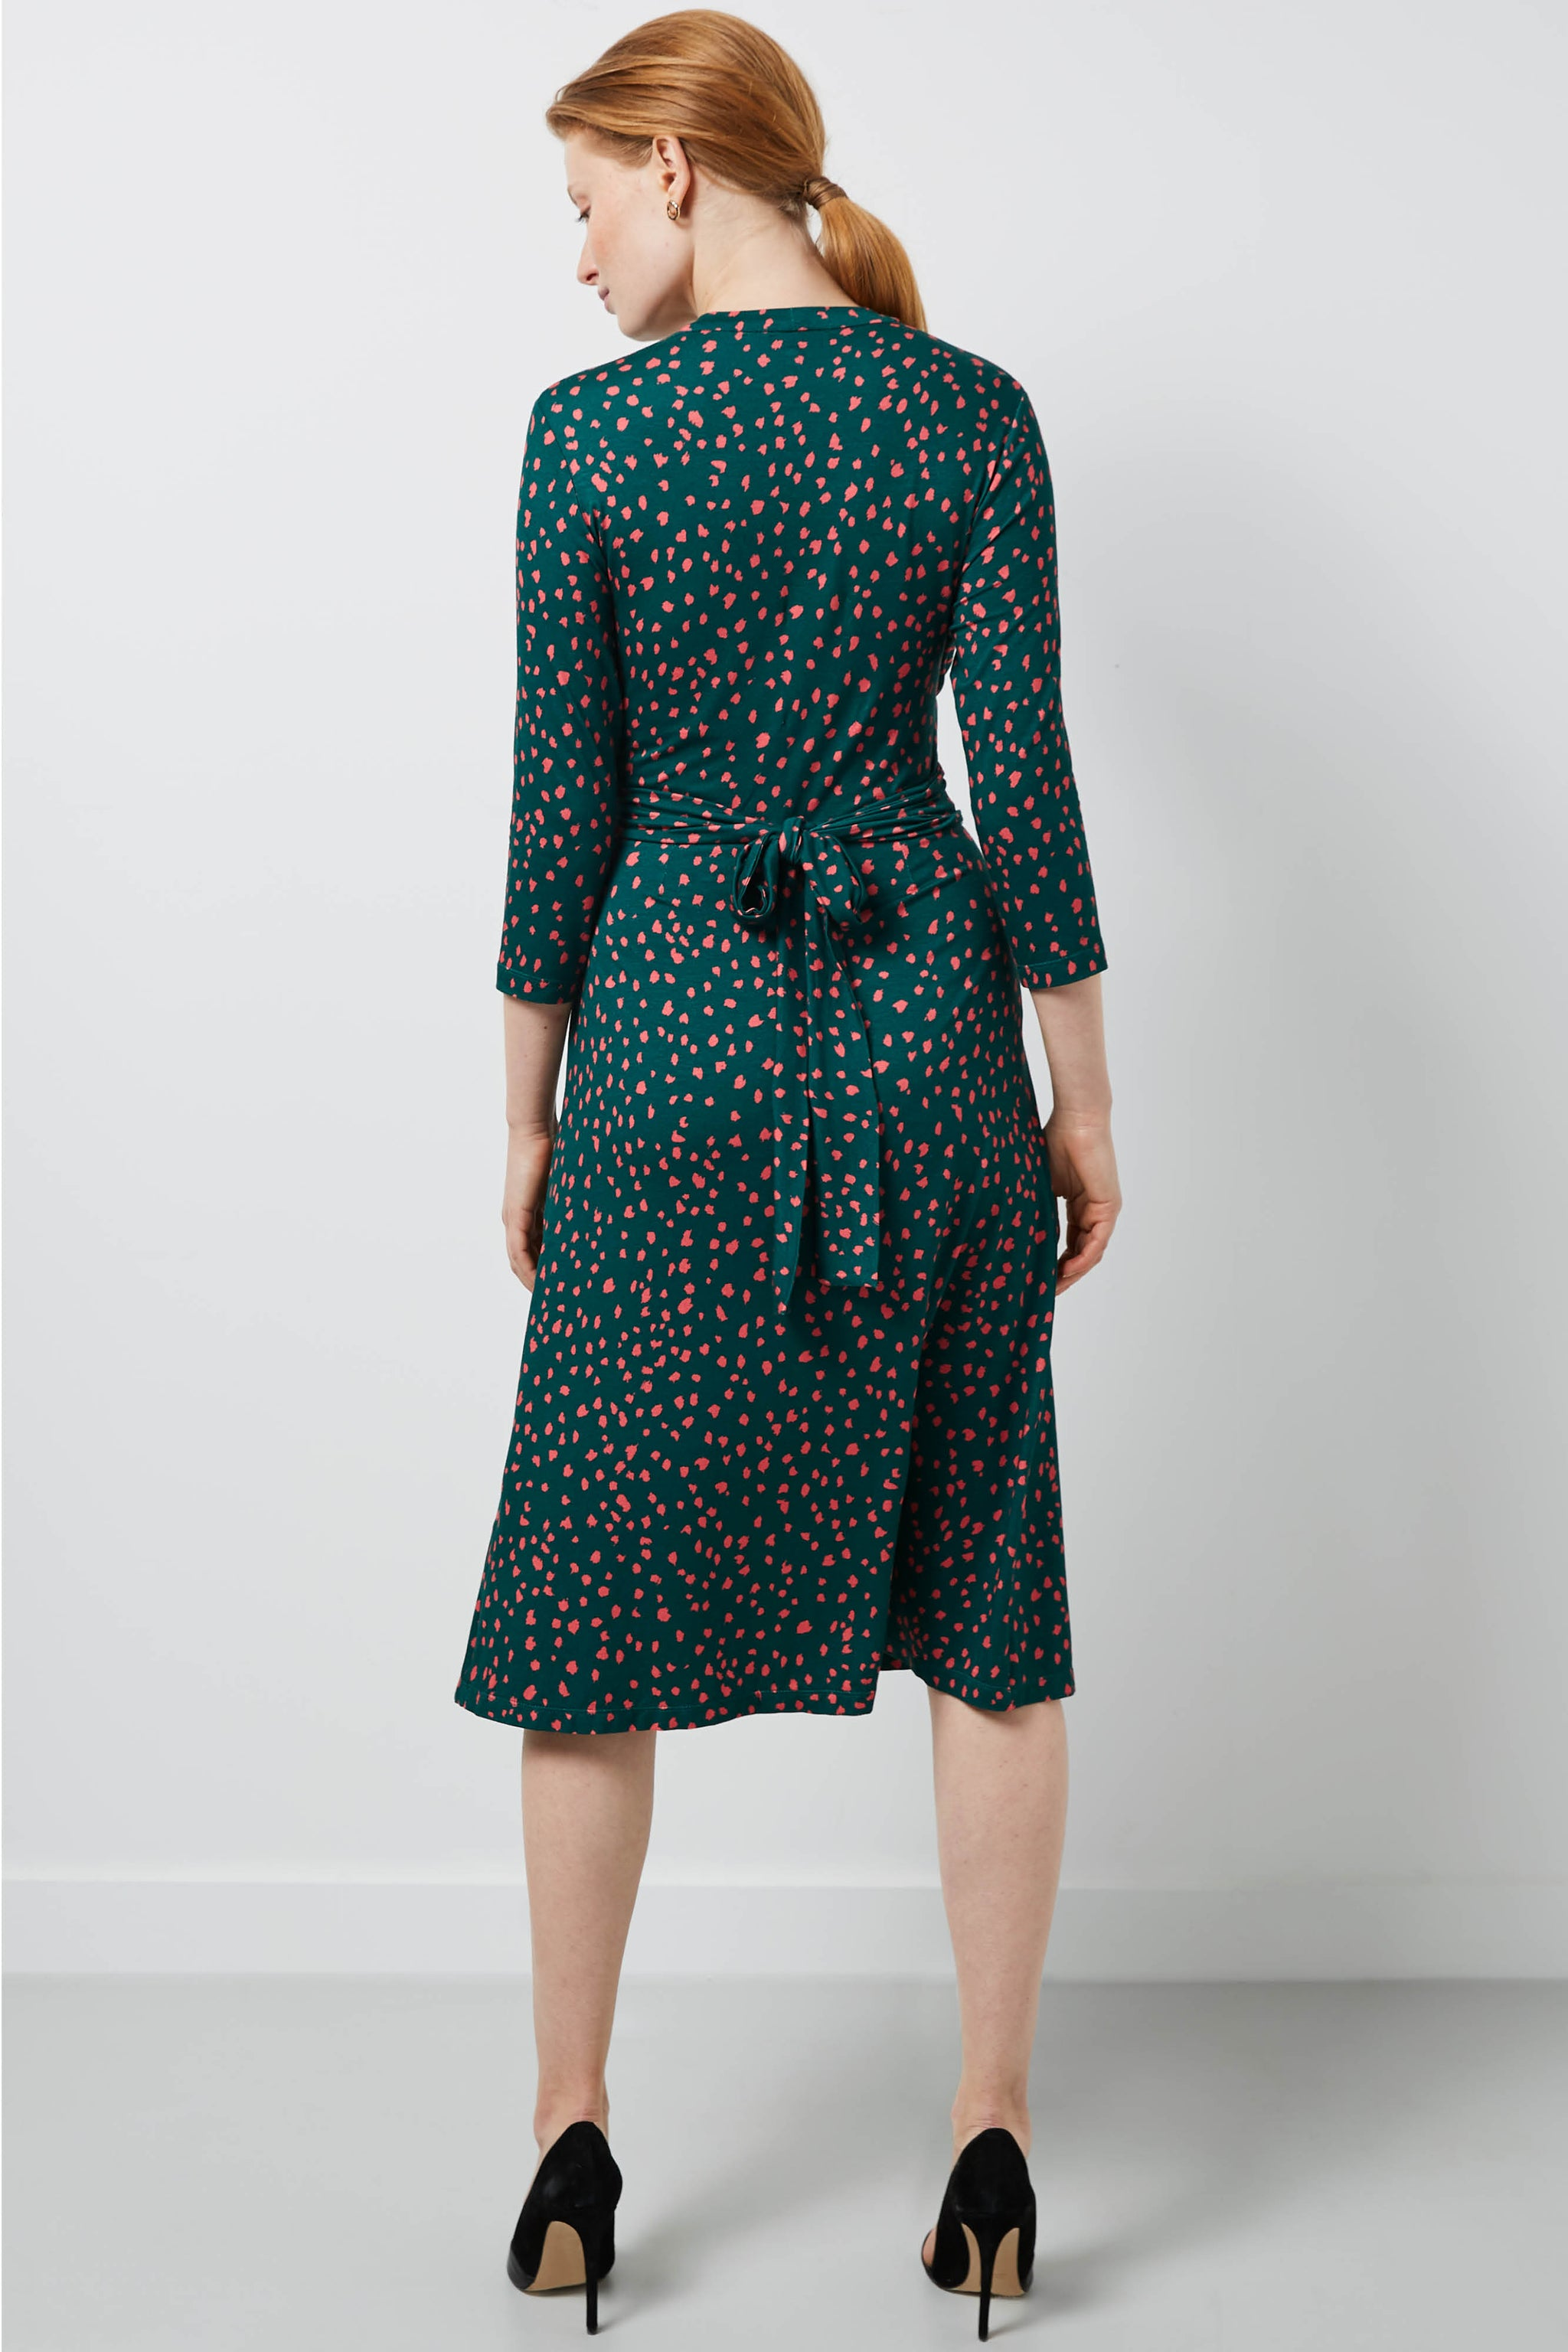 Radley Green Dapple Print Dress